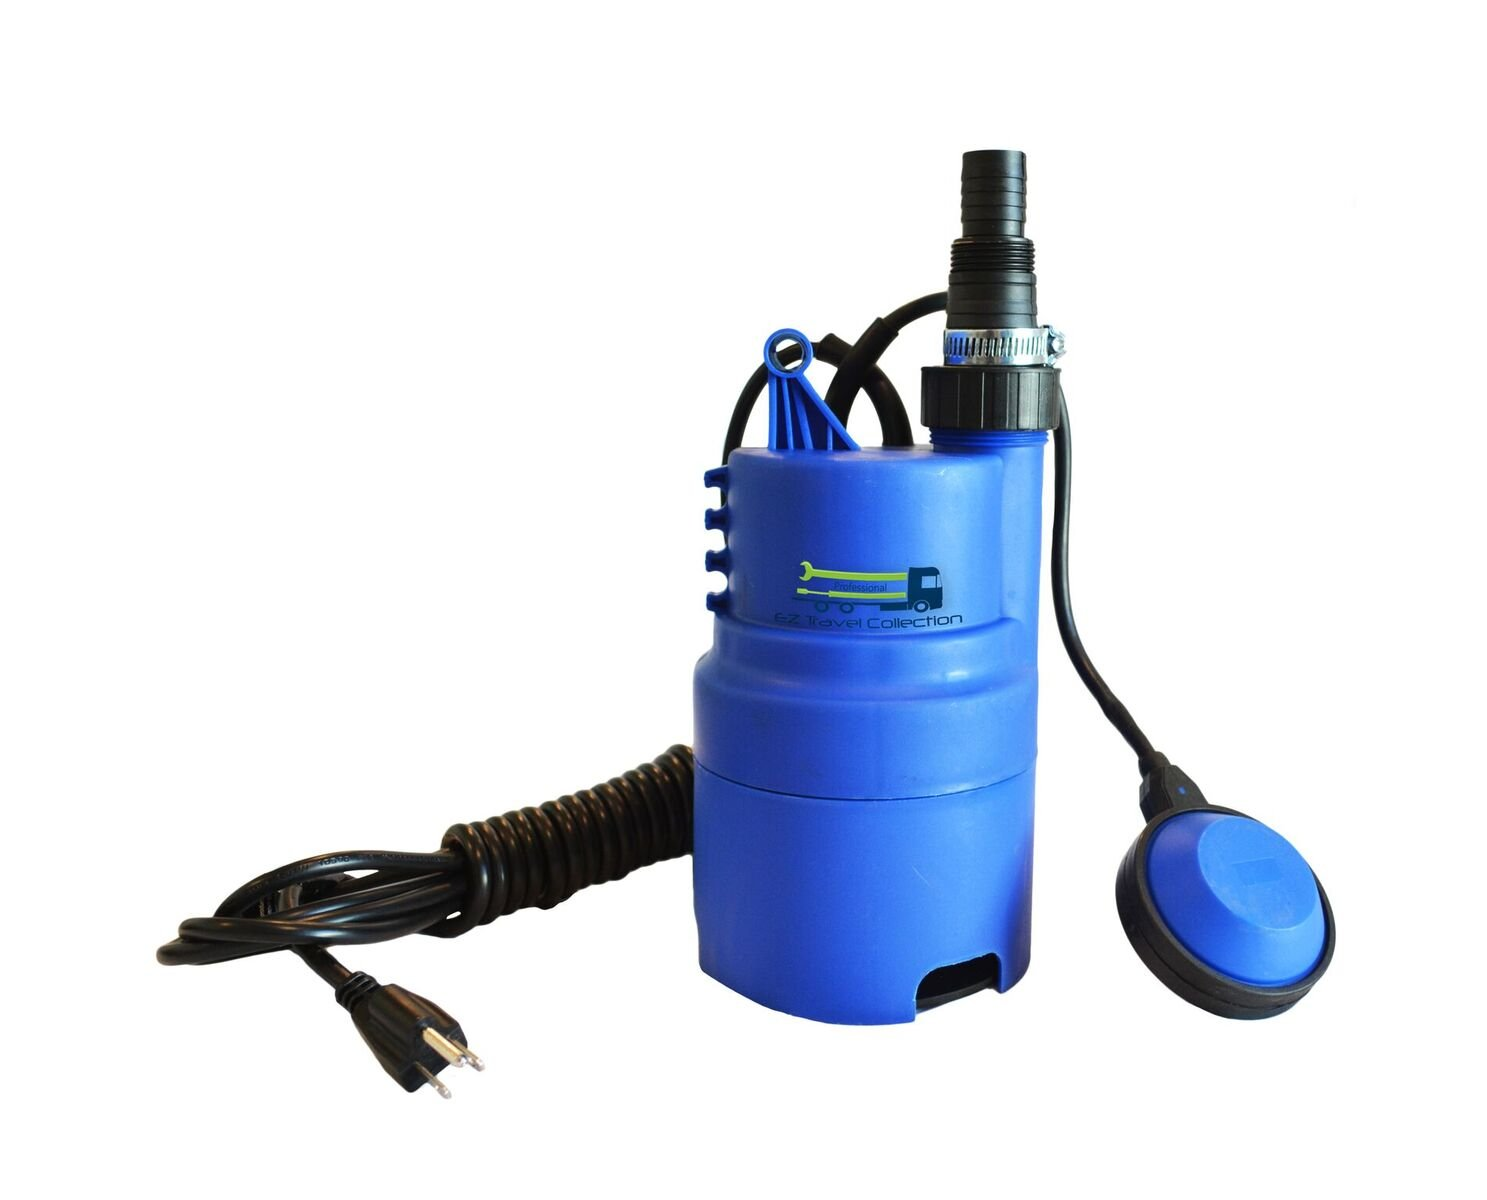 EZ Travel Collection Submersible Pool Draining Water Pump (1,580 Gallons Per Hour)